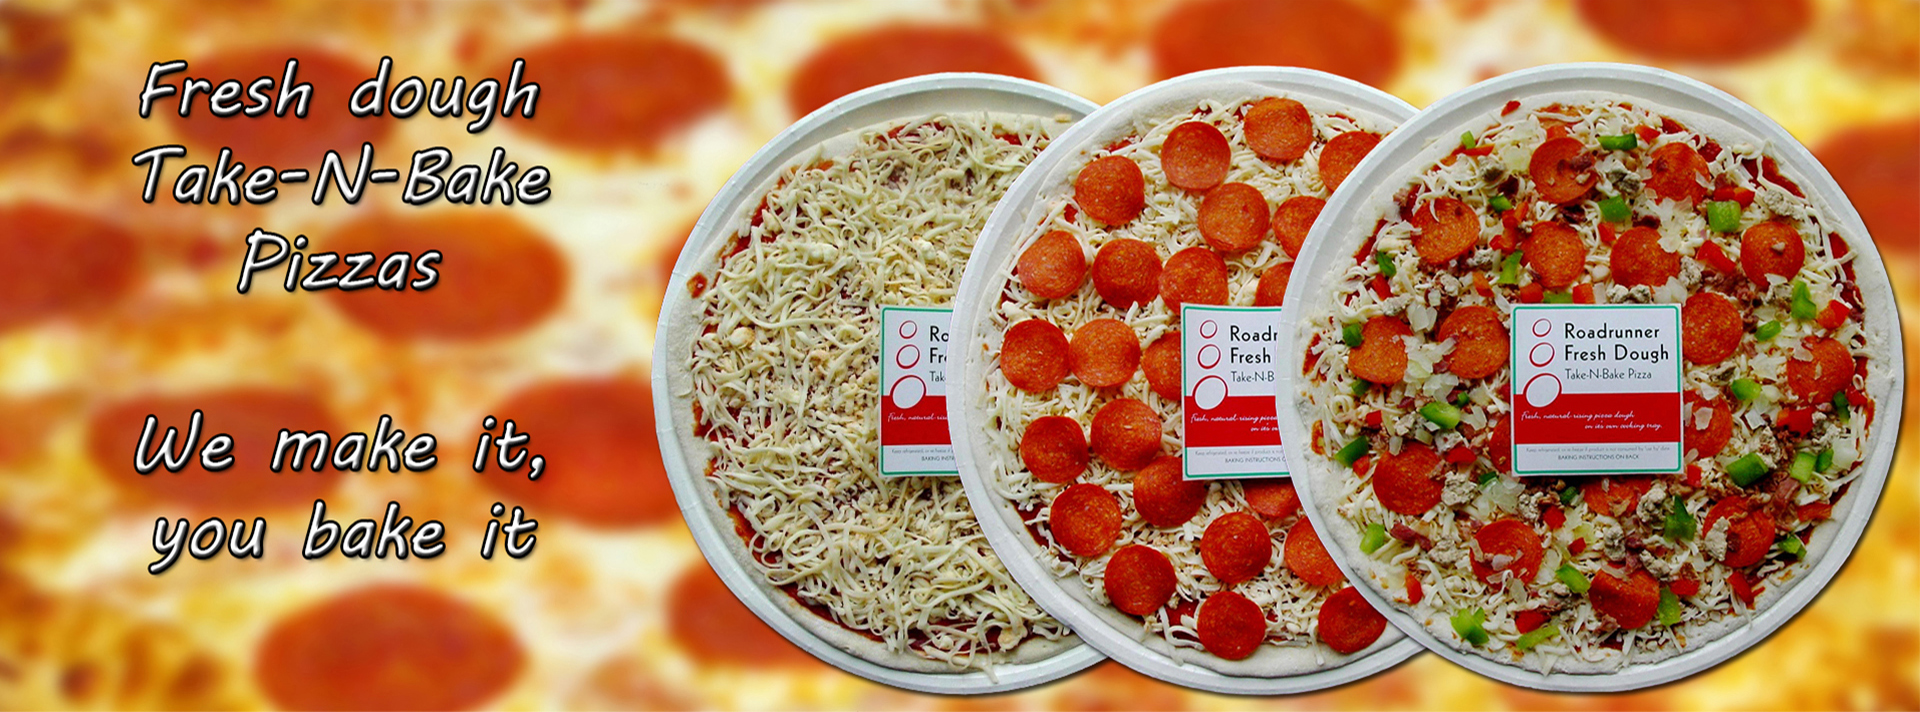 Fresh dough take-n-bake pizzas. We make it, you bake it.